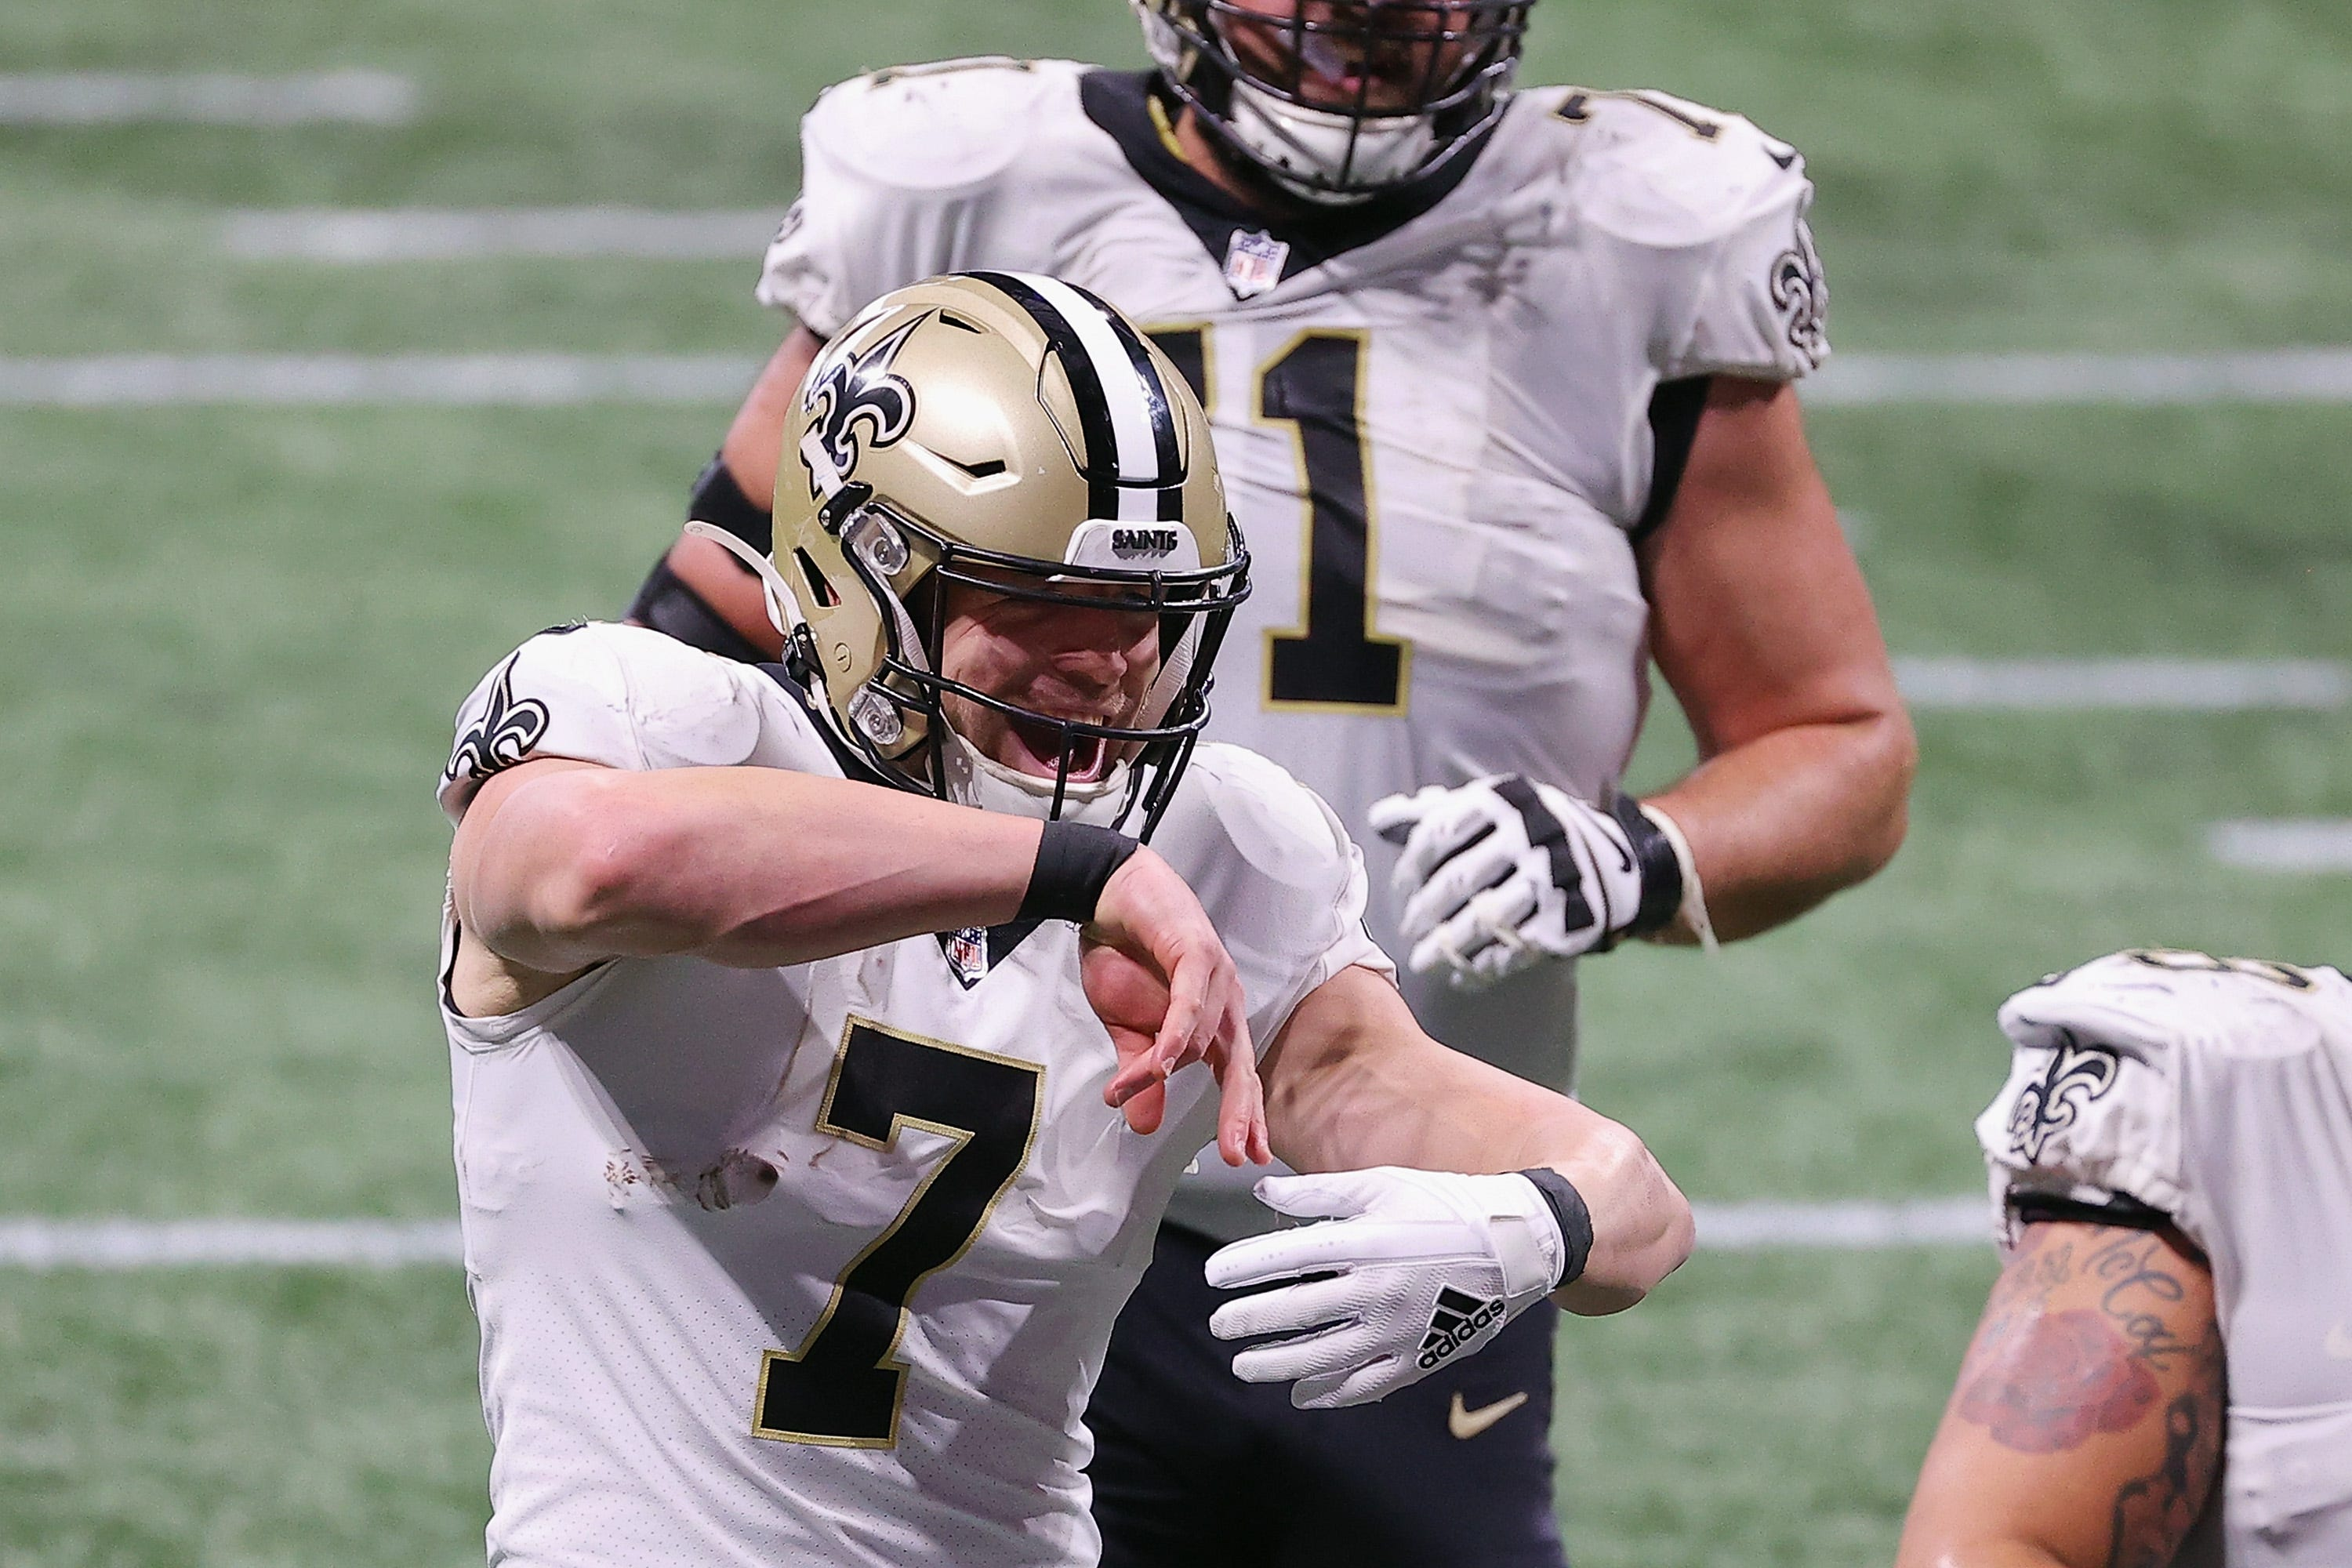 Saints, Chiefs become first NFL team to clinch playoff spot